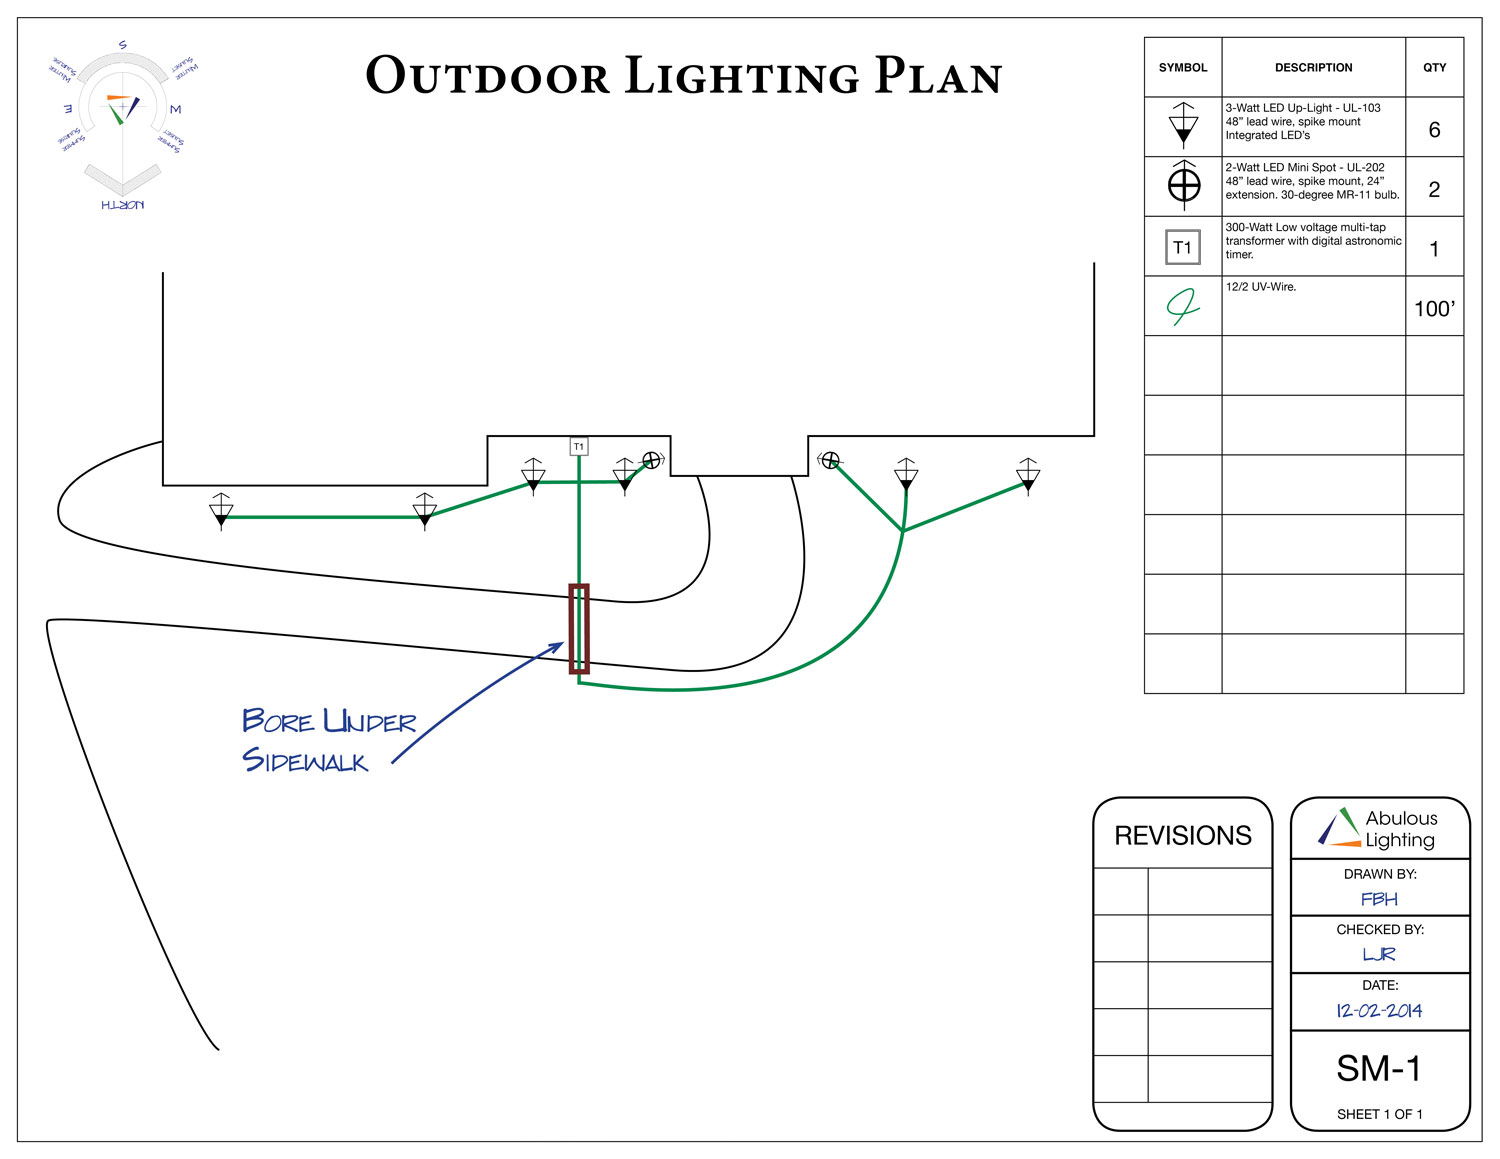 Led Landscape Lighting Wiring Diagram Diagrams How To Plan Abulous Roswell Alliance Outdoor